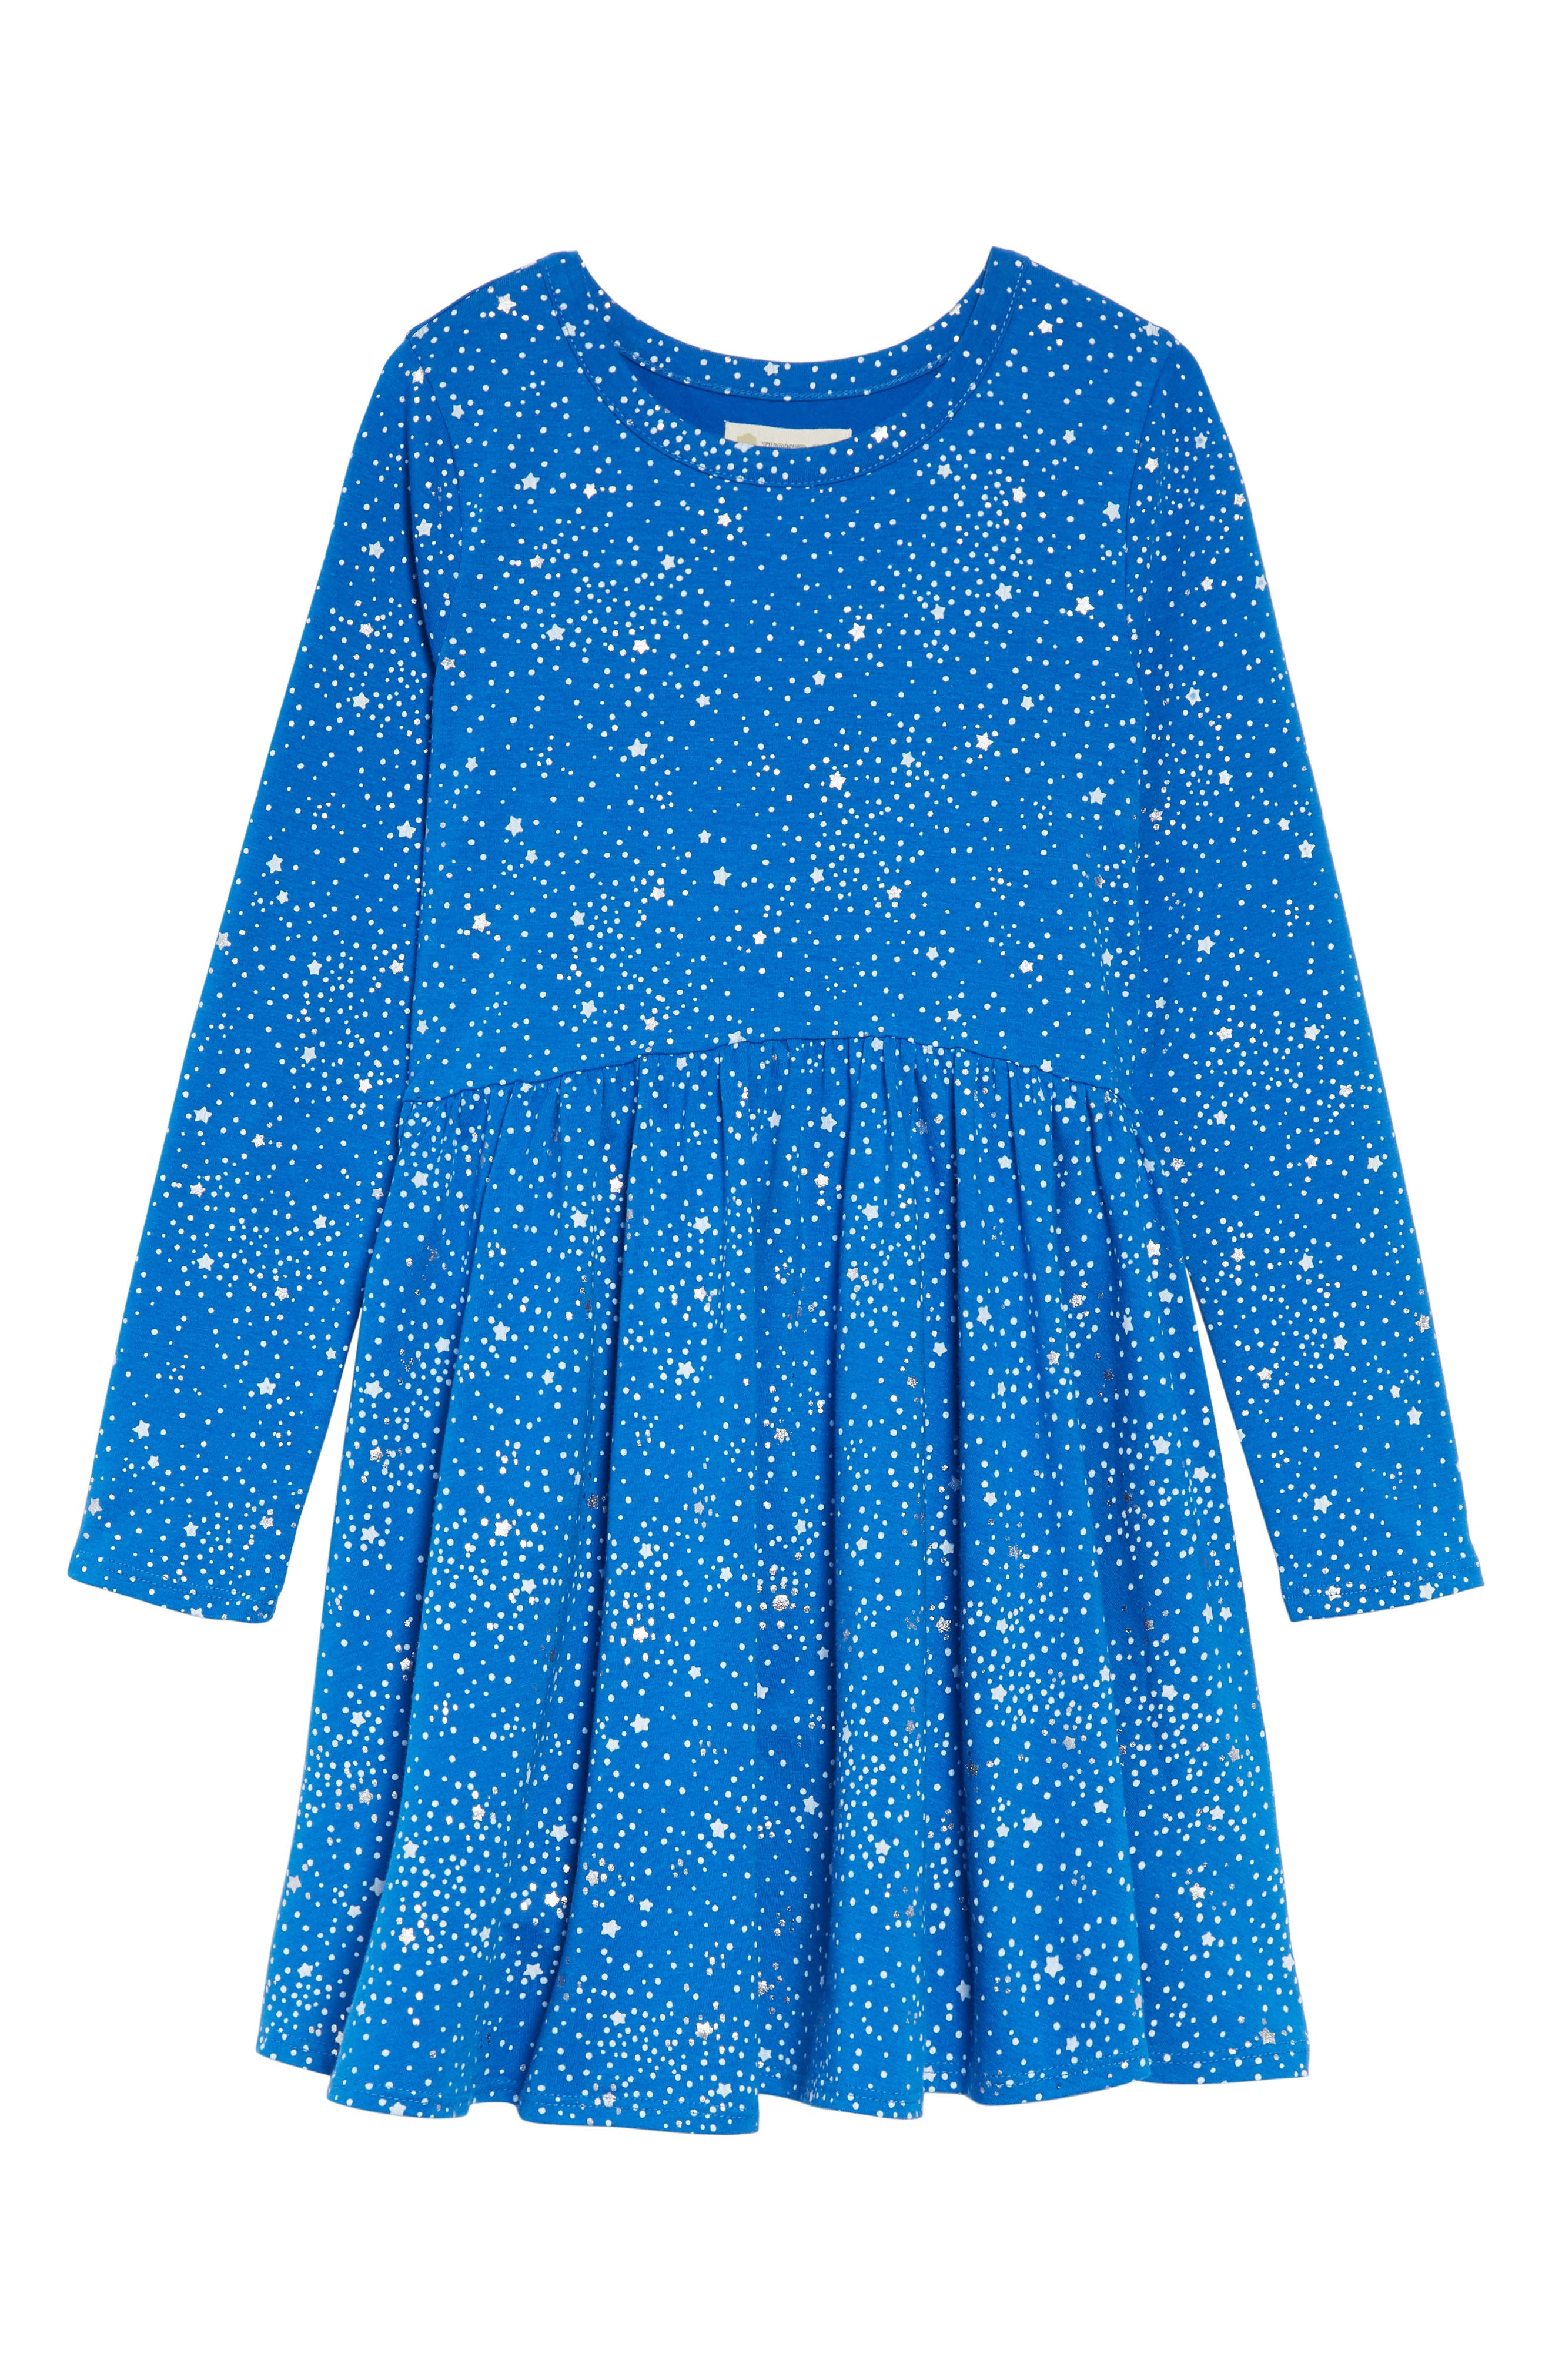 Print Knit Dress,                         Main,                         color, BLUE PRINCESS SPOTS AND STARS